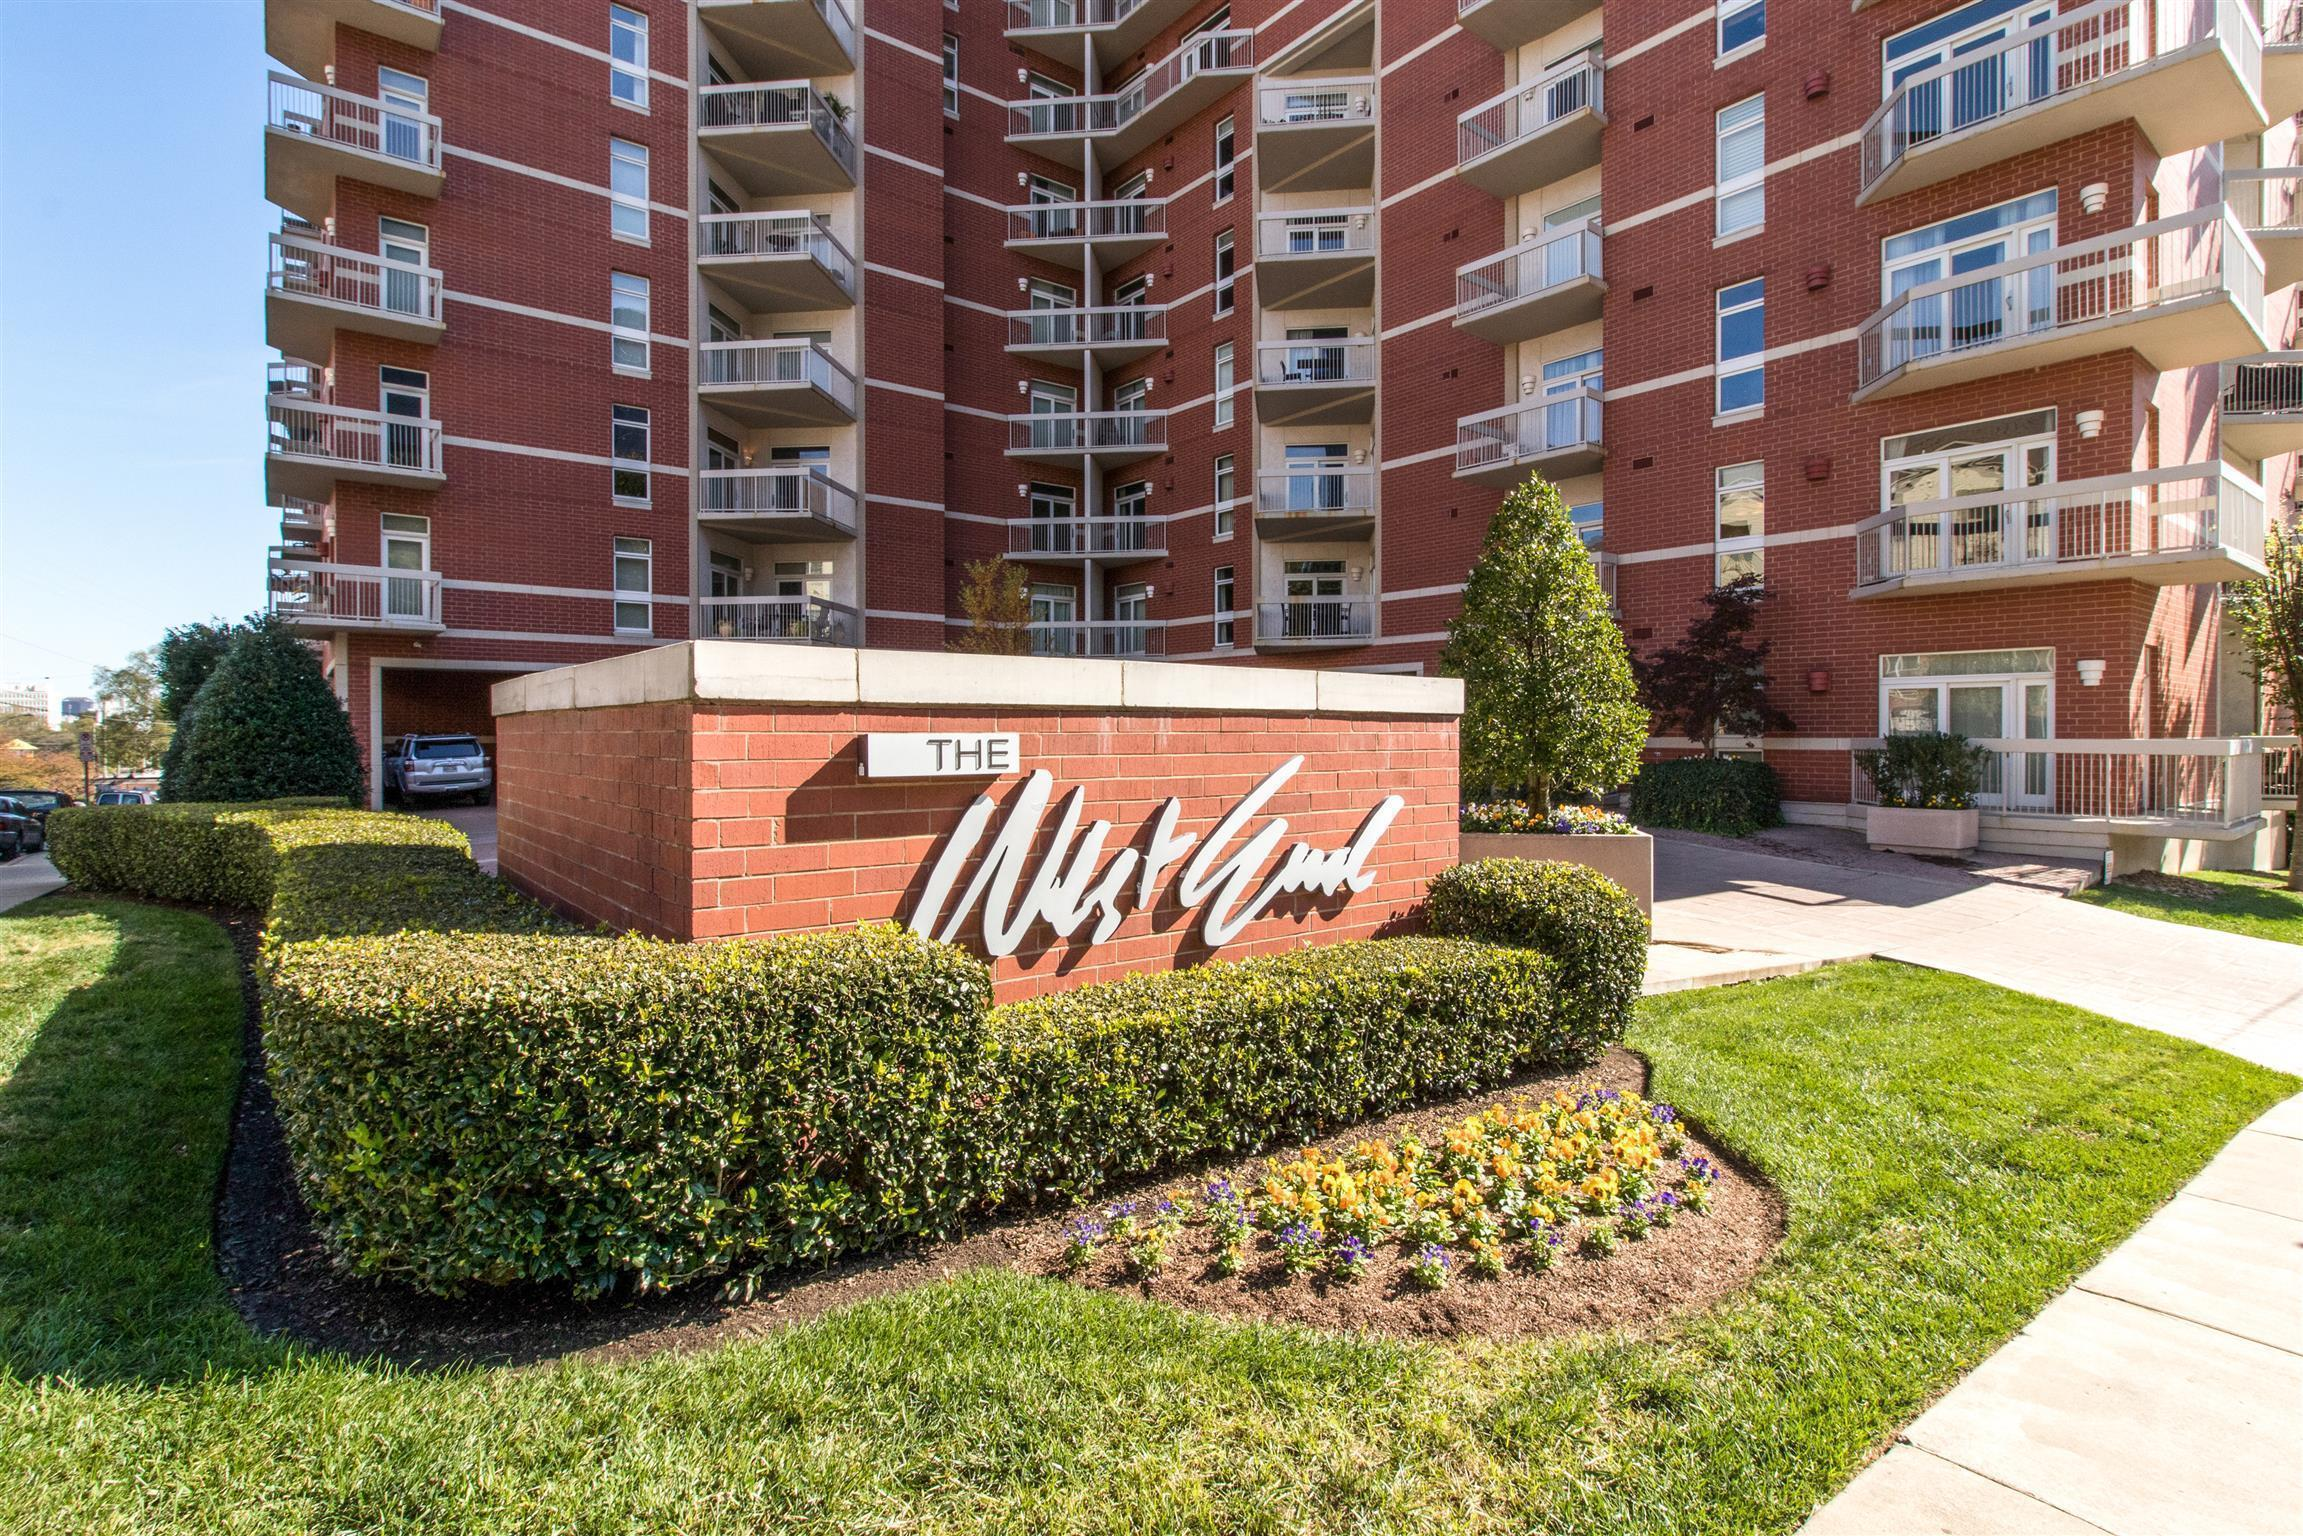 110 31St Ave N Apt 605, Nashville - Midtown in Davidson County County, TN 37203 Home for Sale